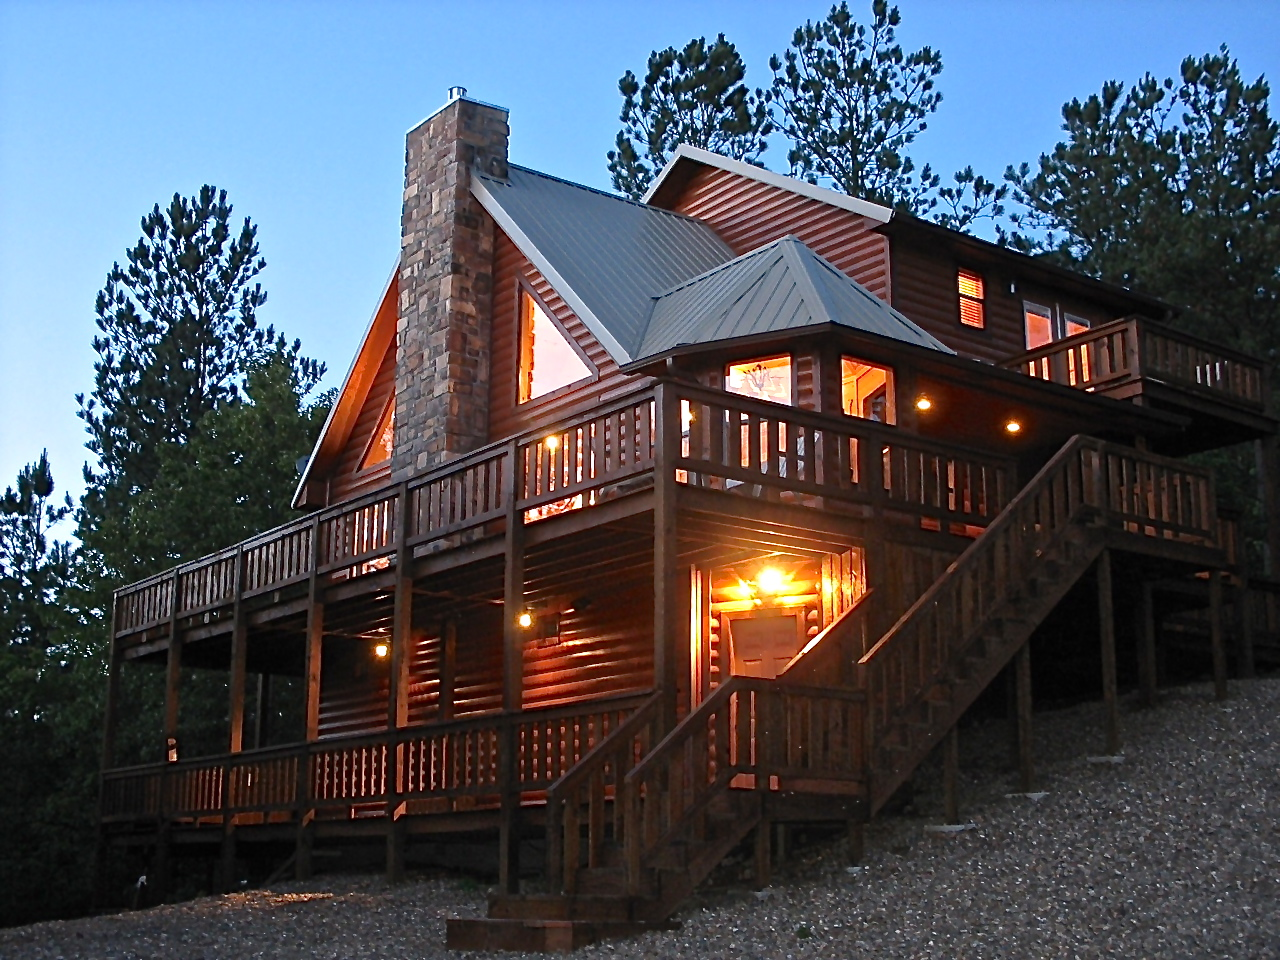 ok new bow tranquil oklahoma image ha hotels in brand skies broken bbab cabins property cabin